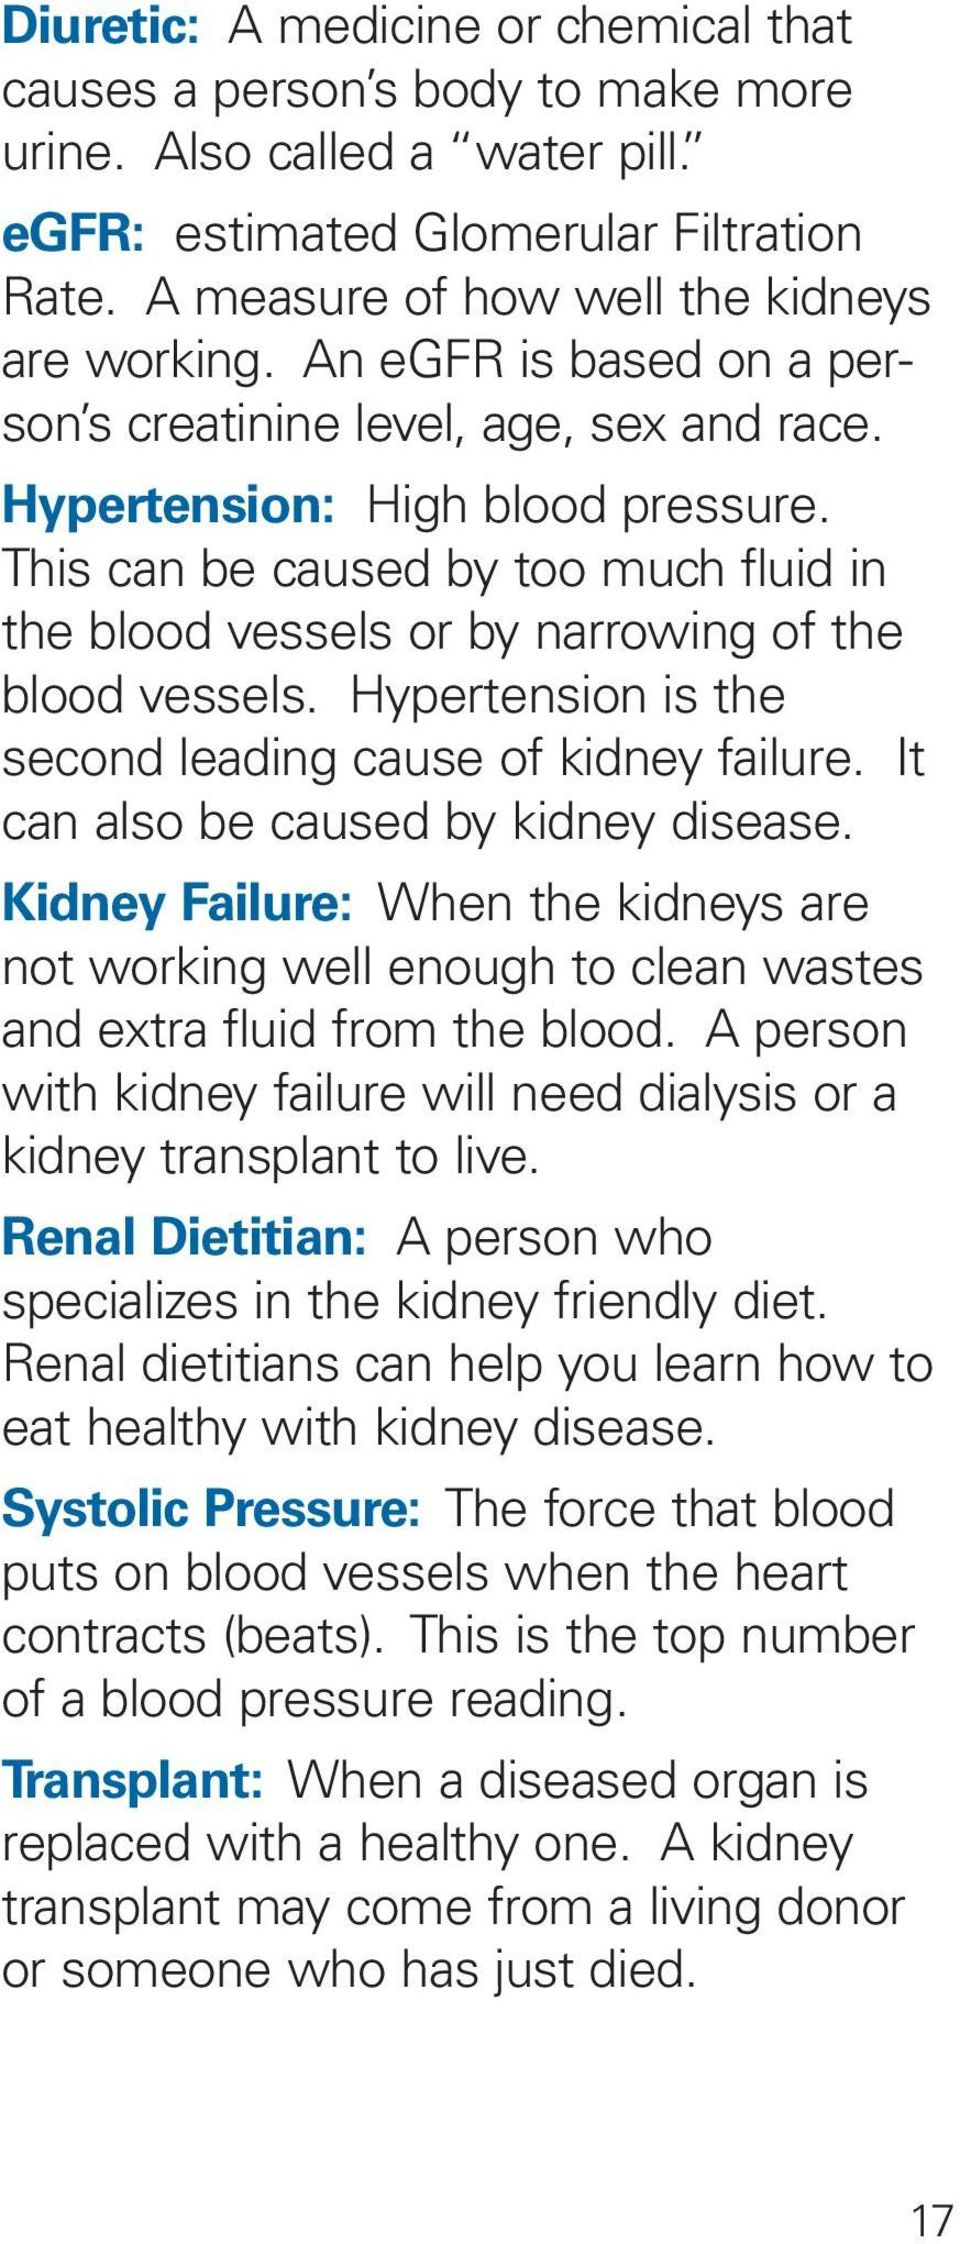 Hypertension is the second leading cause of kidney failure. It can also be caused by kidney disease.